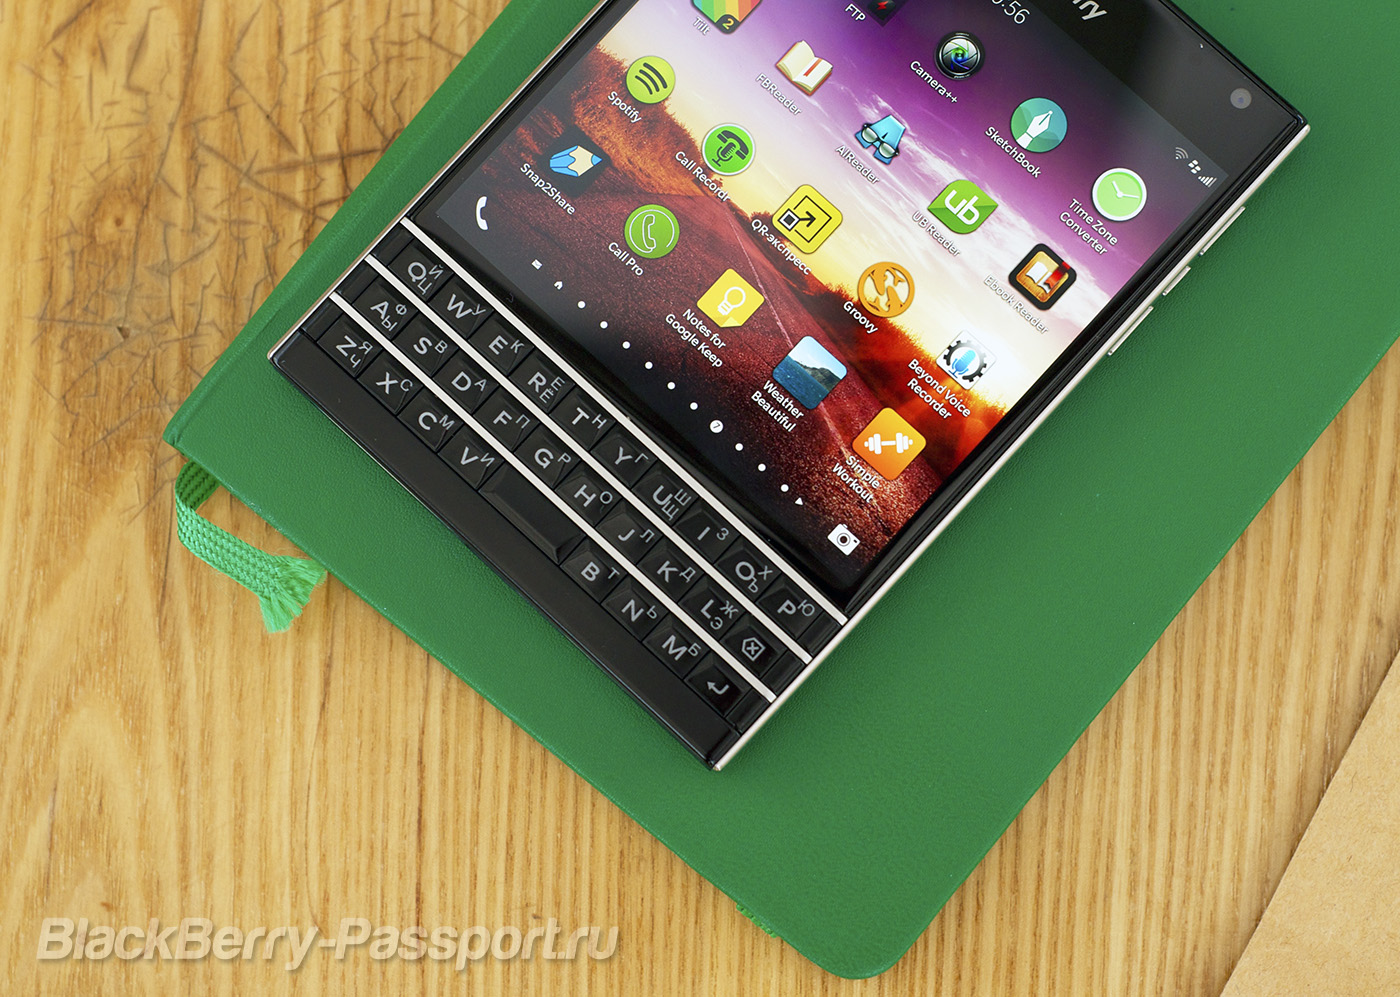 BlackBerry-Passport-Apps-2-16